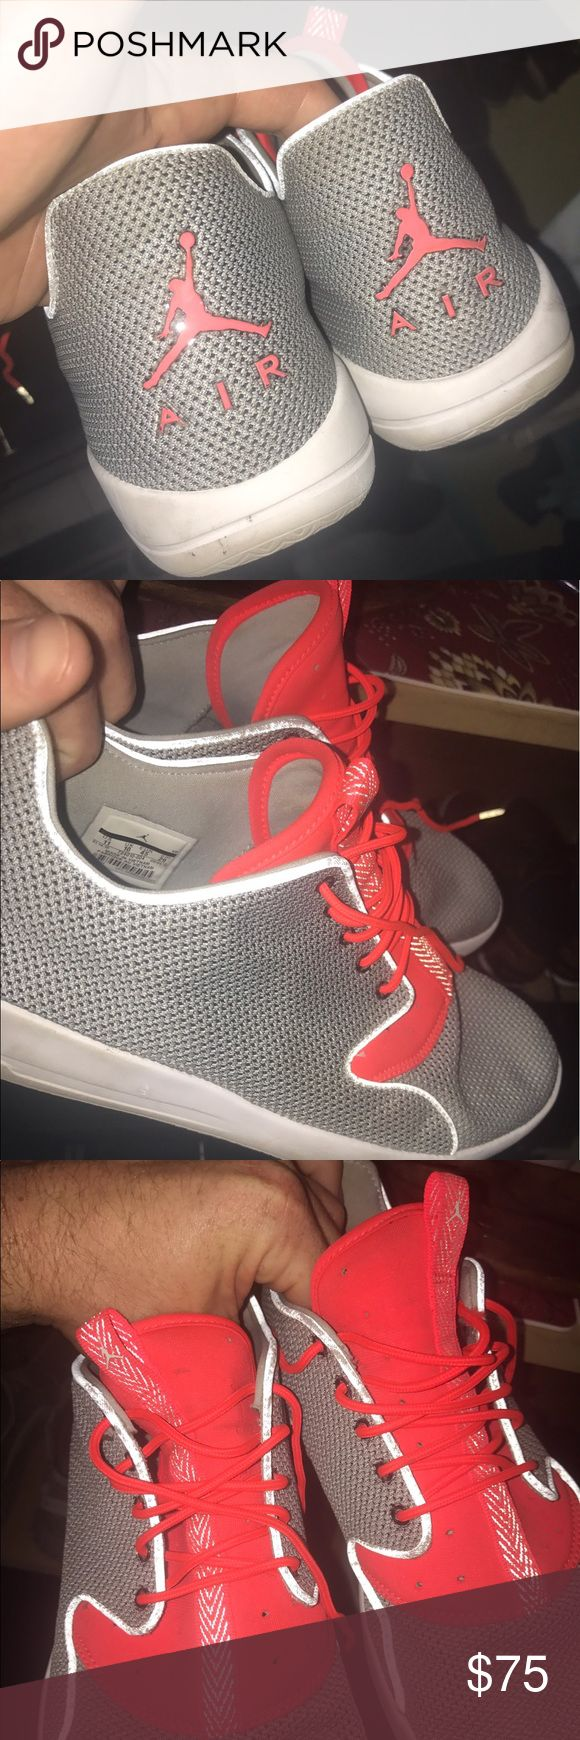 Air Jordan eclipse 2016 shoes Nike Barely worn, great condition, rare color, low price! Jordan Shoes Athletic Shoes